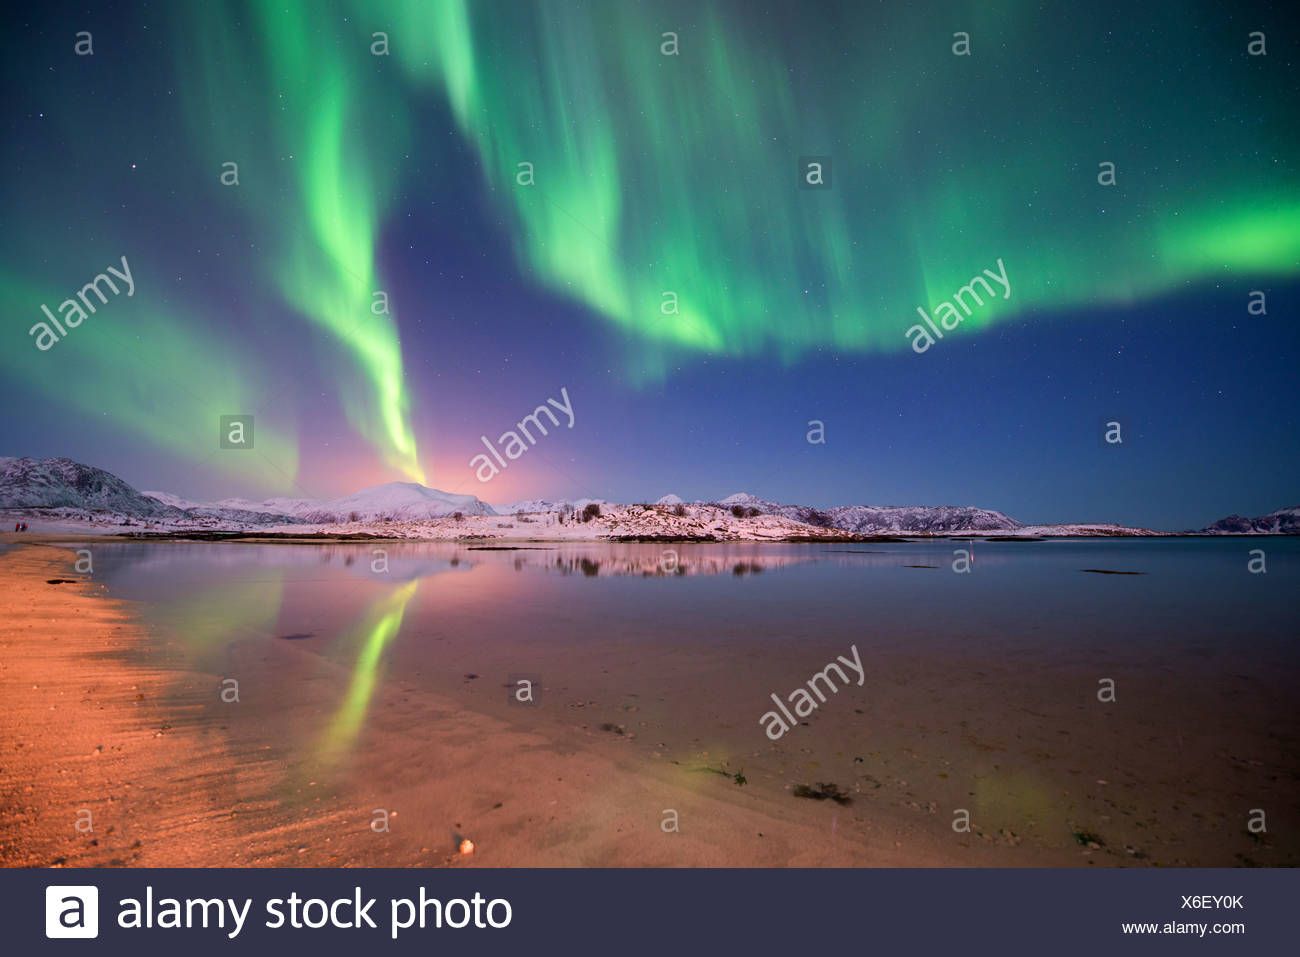 aurora borealis over island Kvaloeya, Norway, Troms - Stock Image